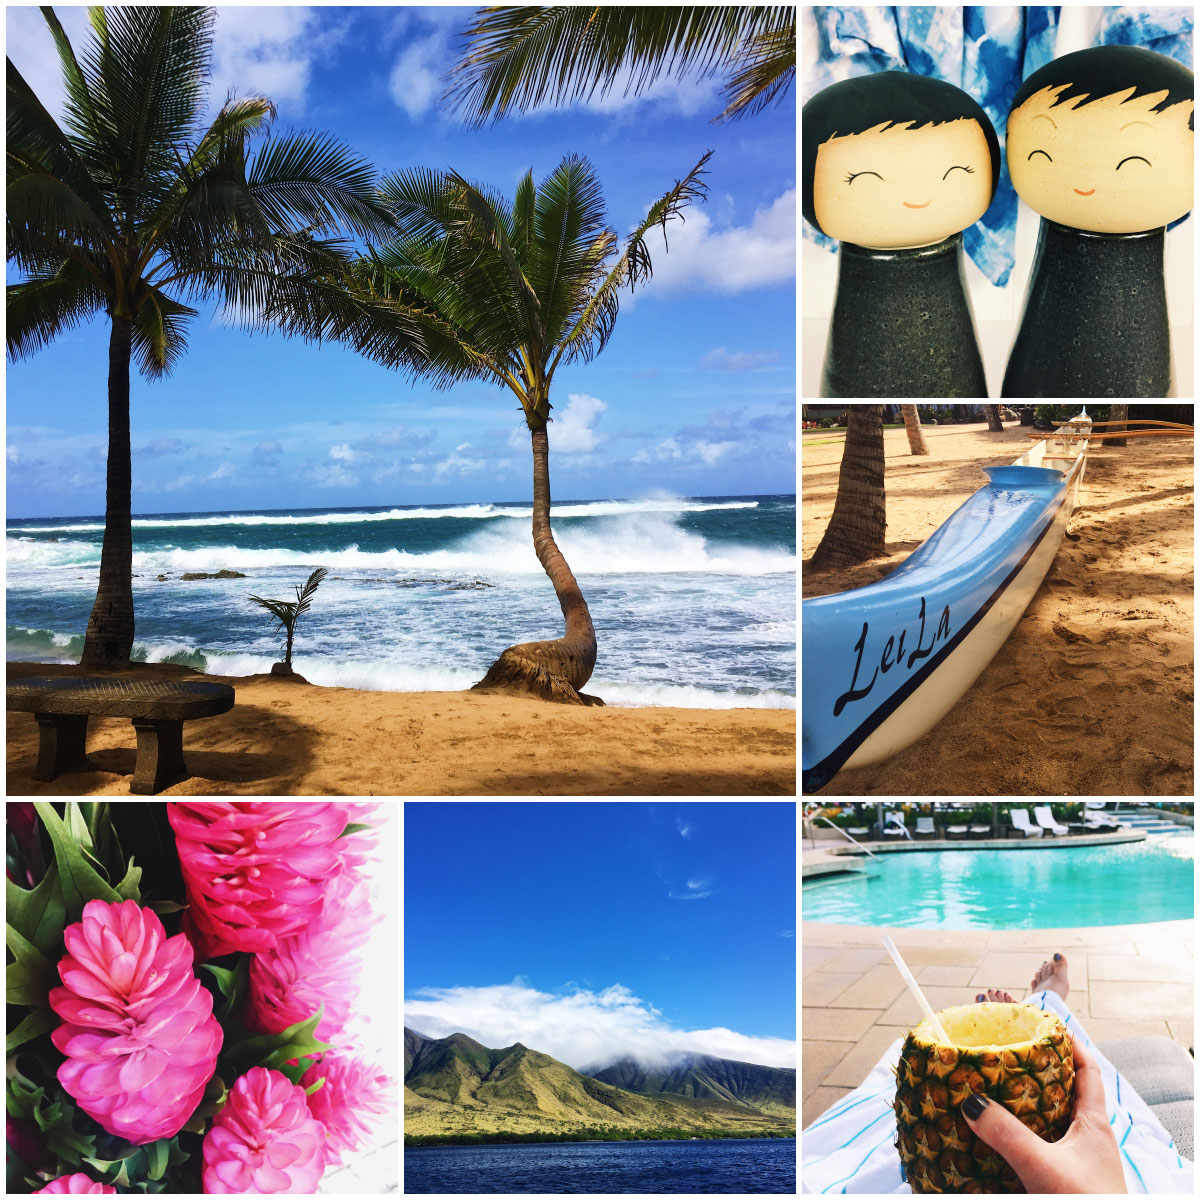 Photos from Maui, Hawaii including the ocean, flowers, and pools